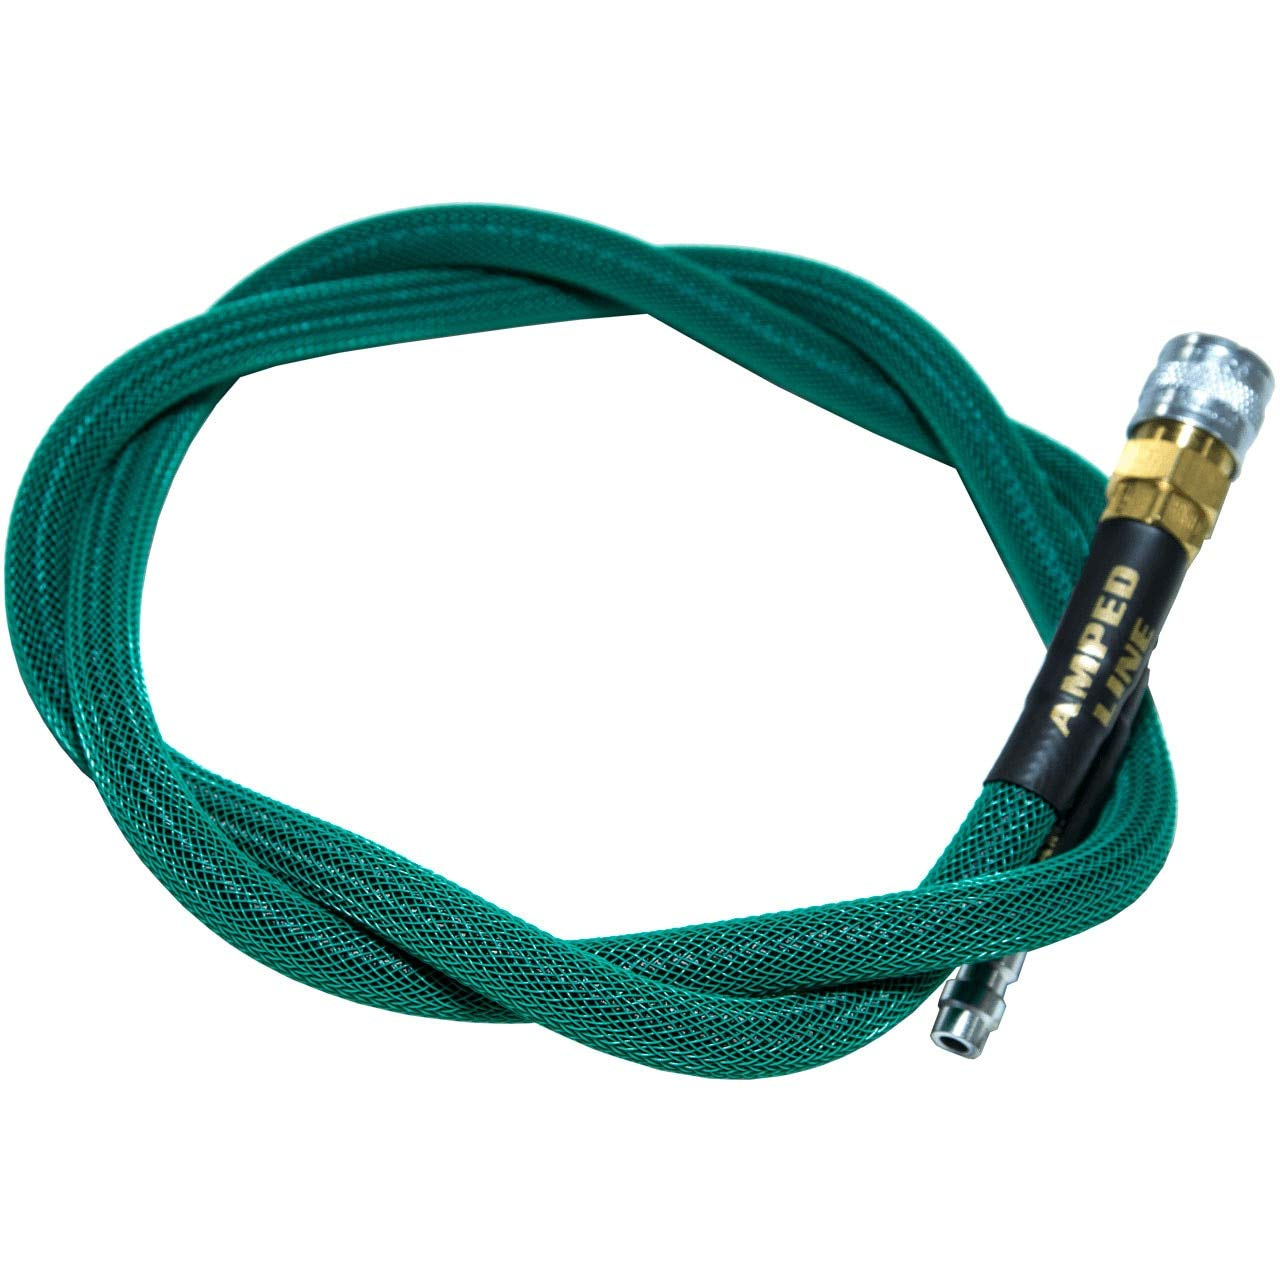 AMPED Airsoft Amped Line | Standard Weave for PolarStar, Wolverine, and Redline HPA Units 42 Inch Mint by AMPED Airsoft